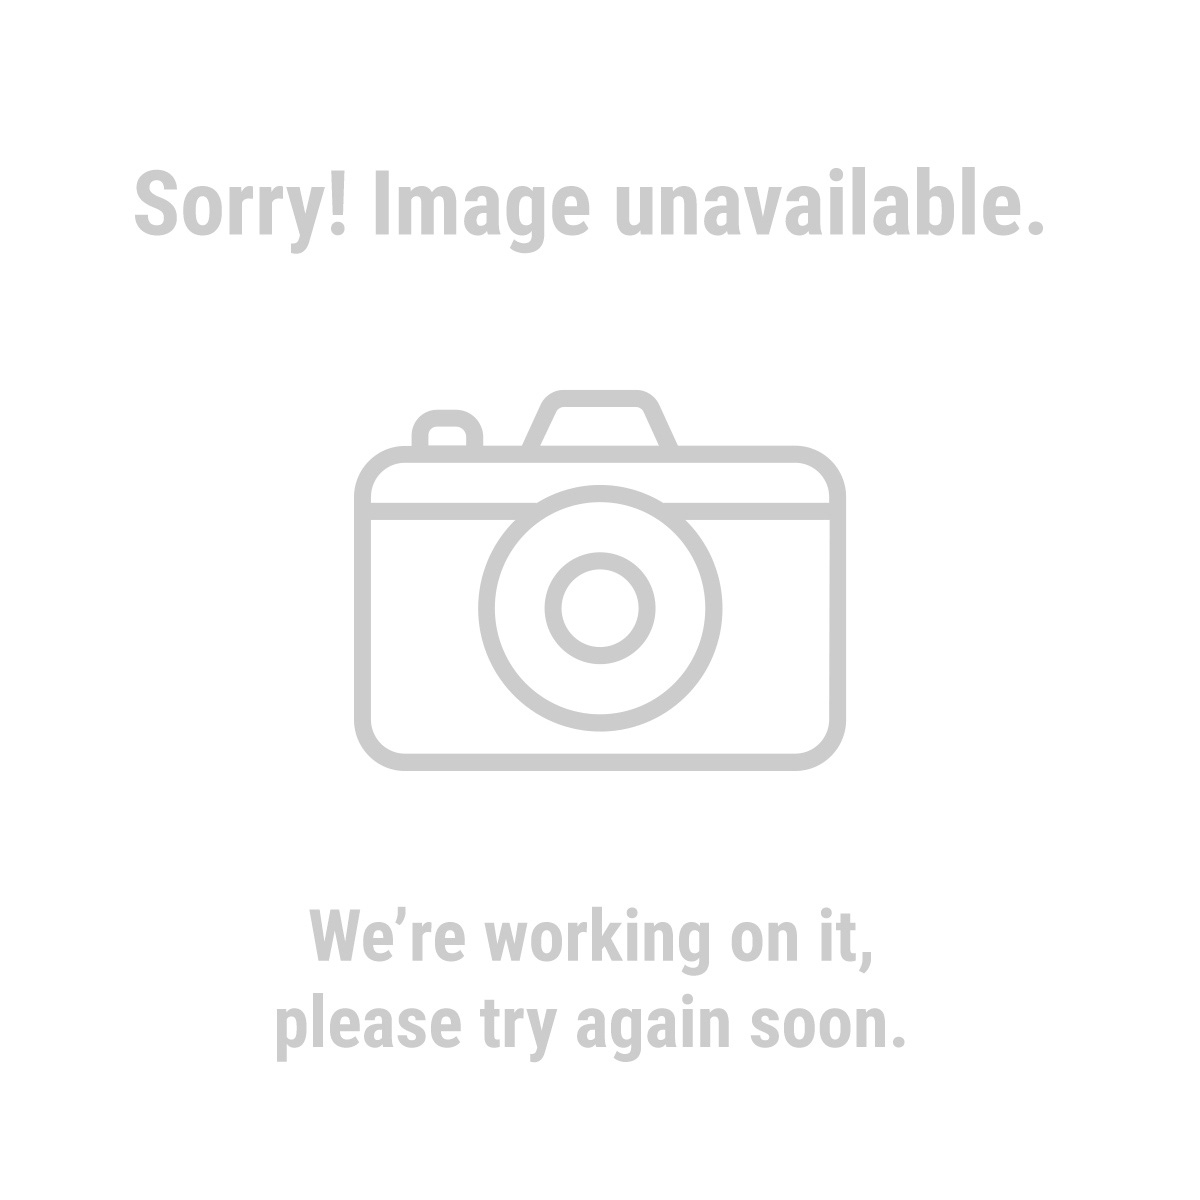 Haul-Master 69853 Solid Rubber Wheel Chock